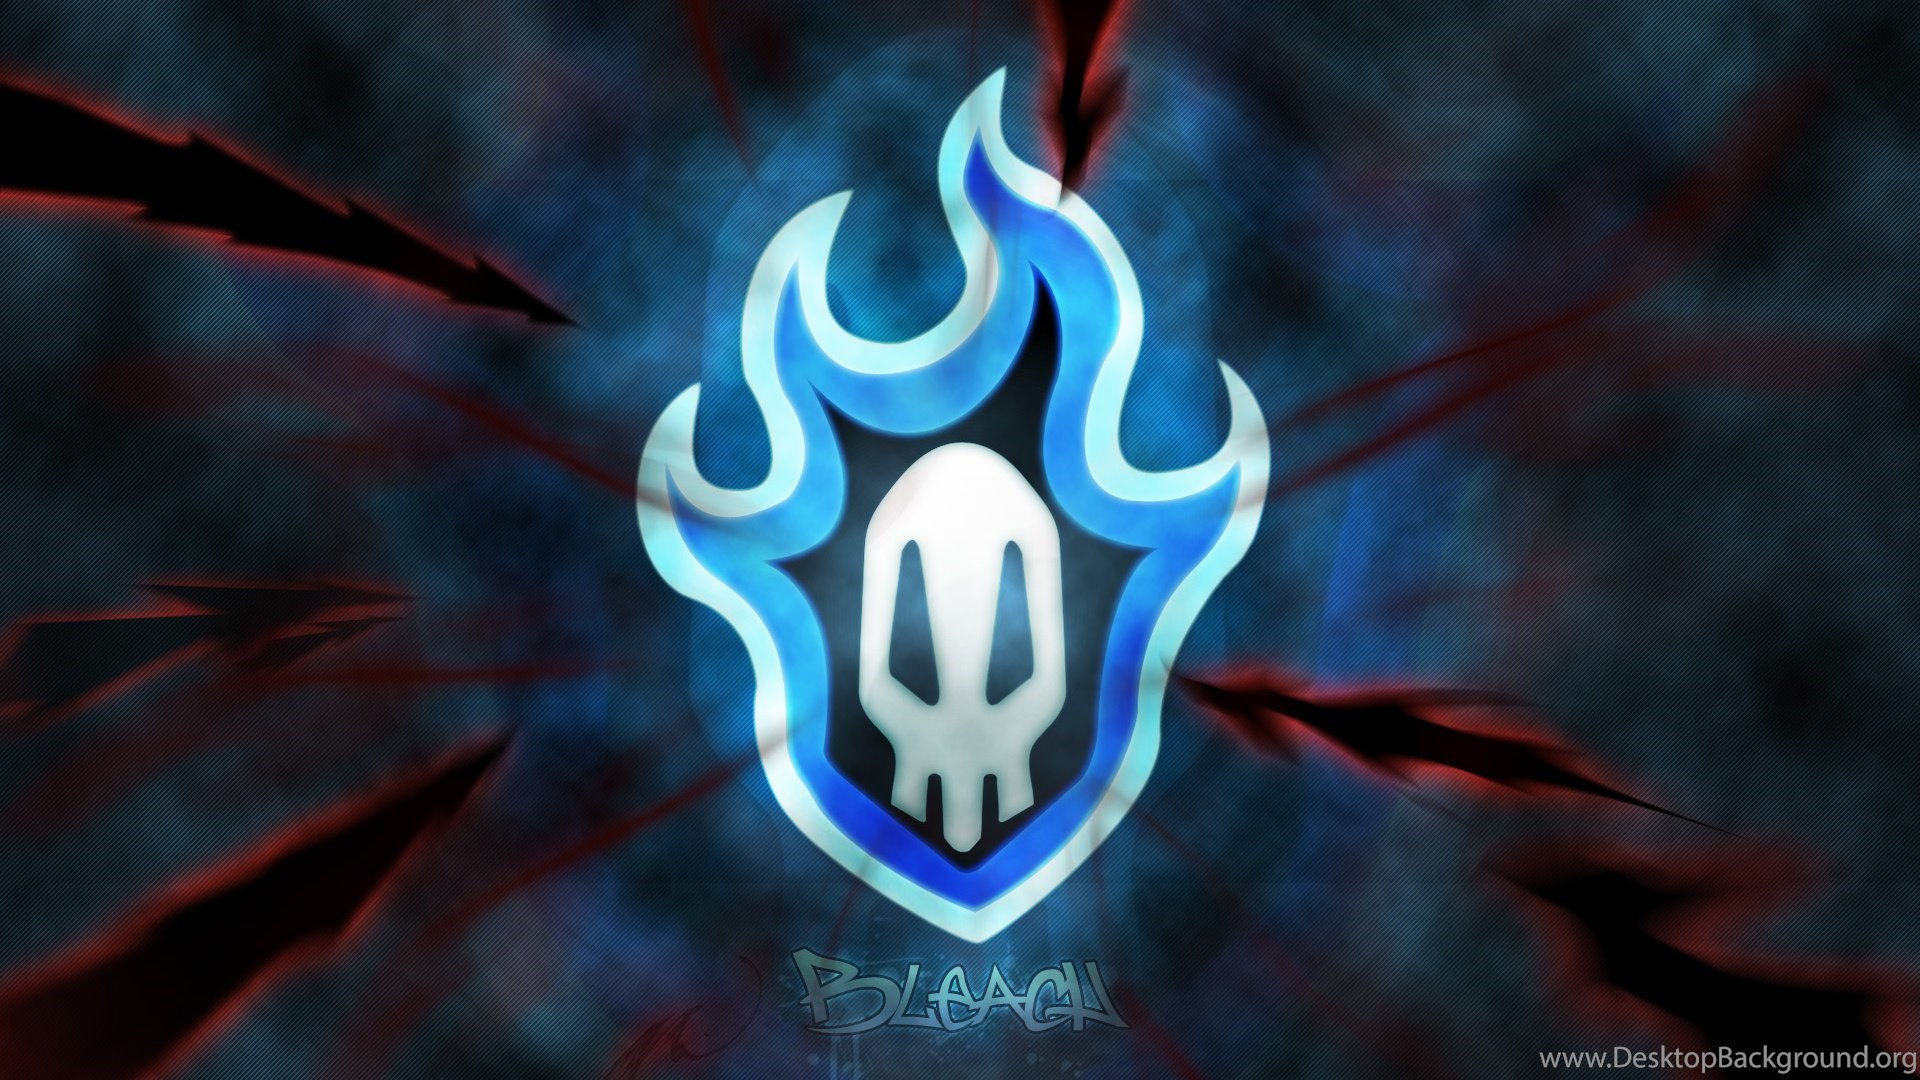 Blue Fire Skull Resolution Wallpapers Abstract Jpg 1920x1080 Desktop Pictures